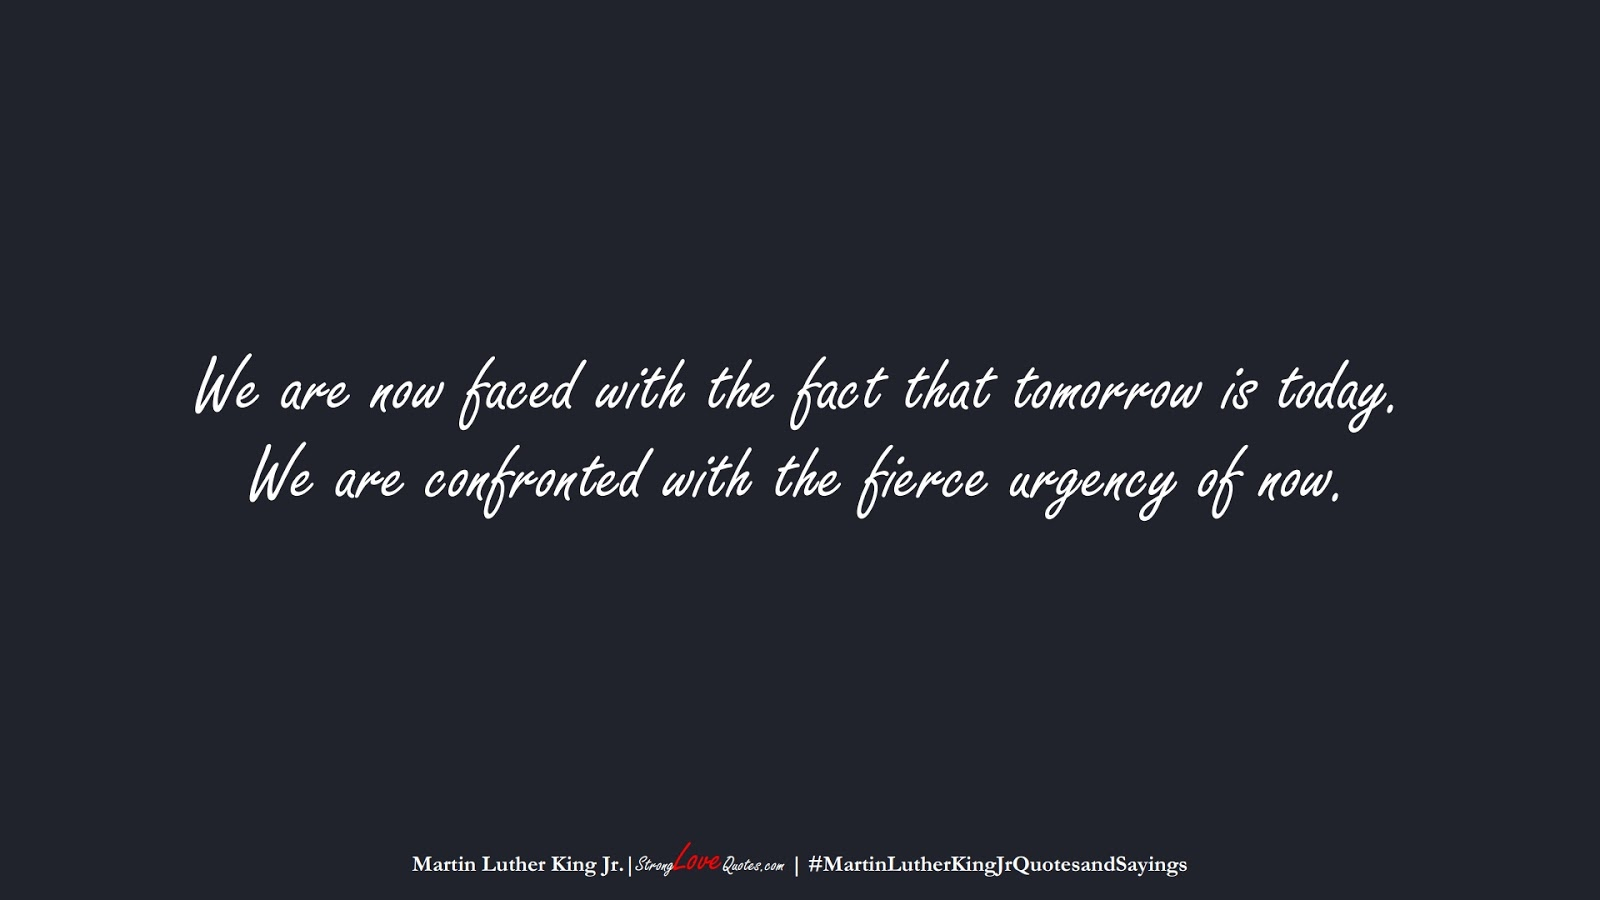 We are now faced with the fact that tomorrow is today. We are confronted with the fierce urgency of now. (Martin Luther King Jr.);  #MartinLutherKingJrQuotesandSayings